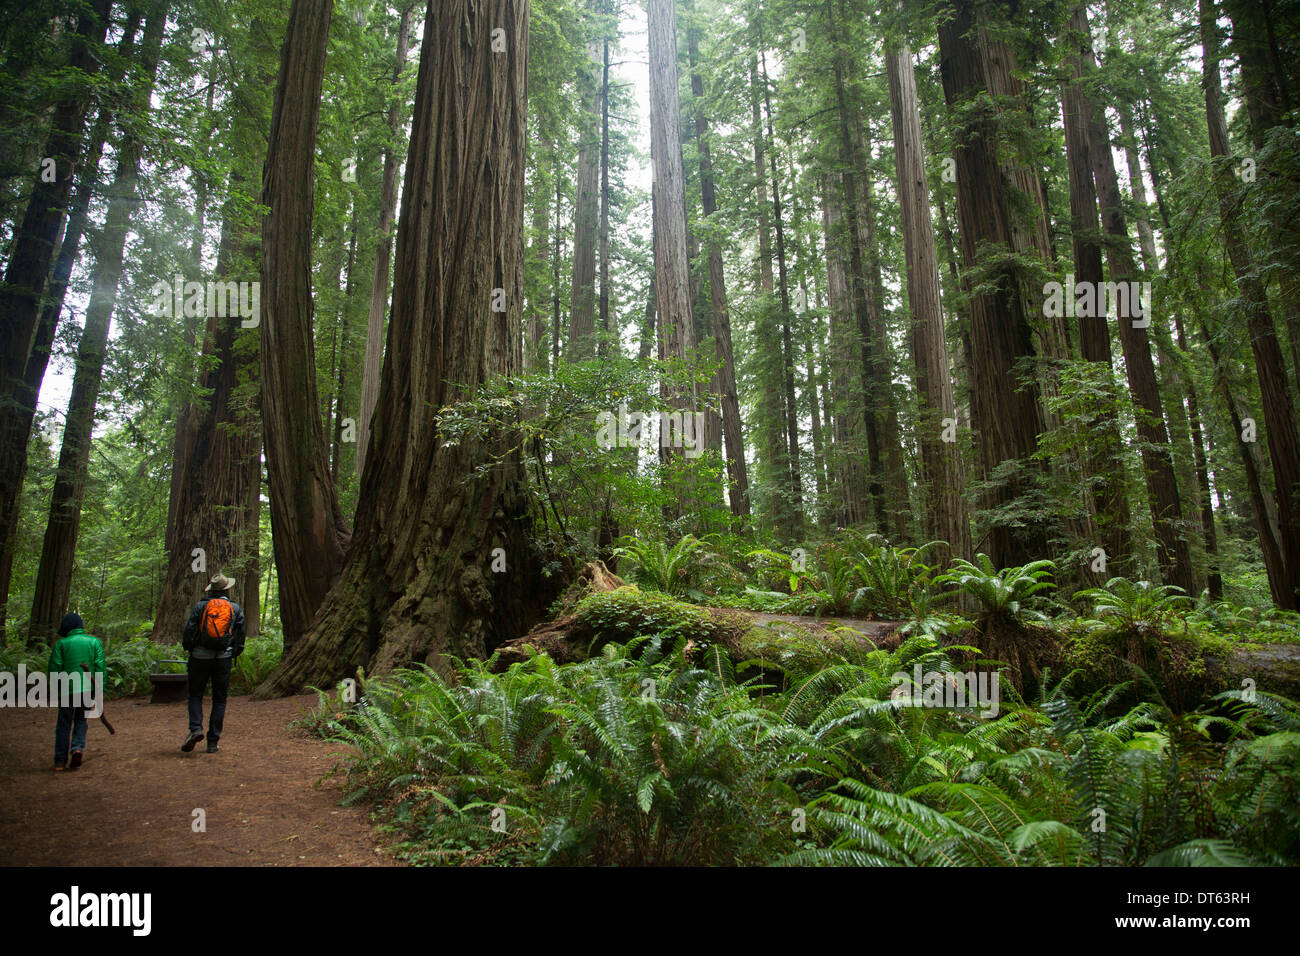 Father and son in Redwoods National Park, California, USA - Stock Image